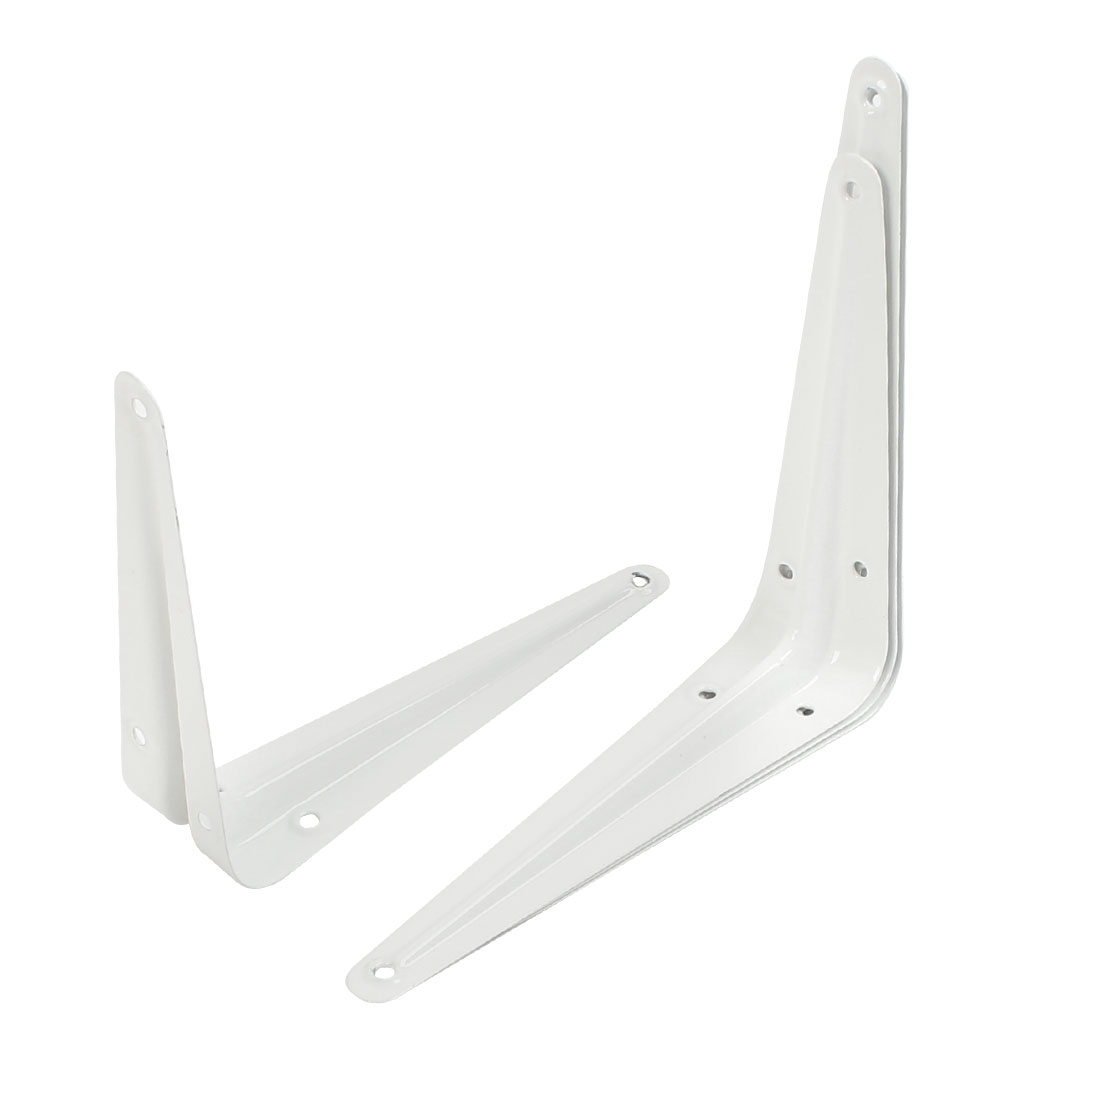 4 Pcs L Shaped Wall Mount Support Shelf Bracket Frame 15cm x 12.5cm